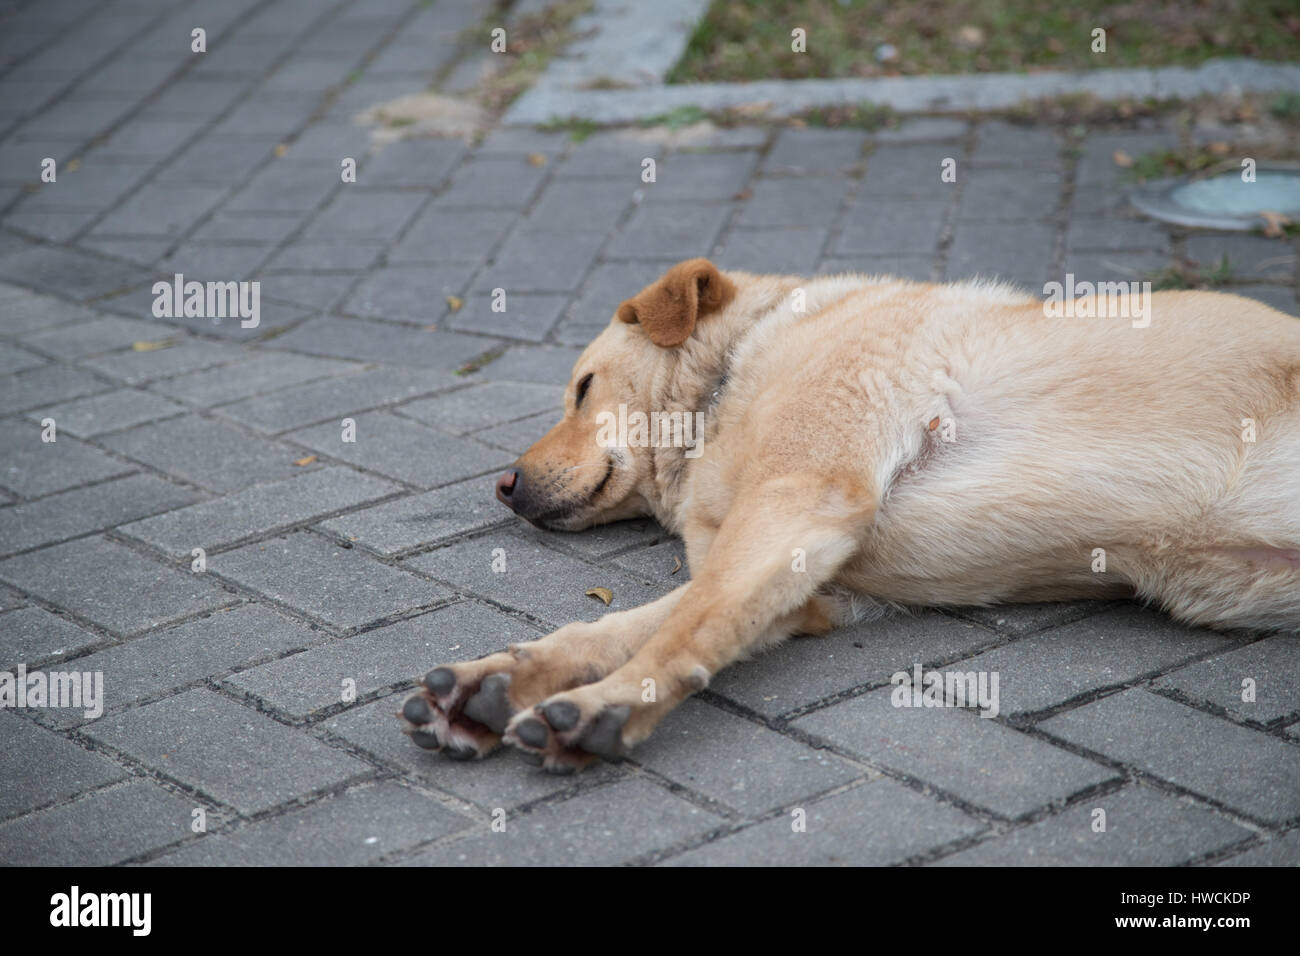 A Dog Sleeps on the Pavement outside the Po Lin Monastry near Hong Kong. - Stock Image